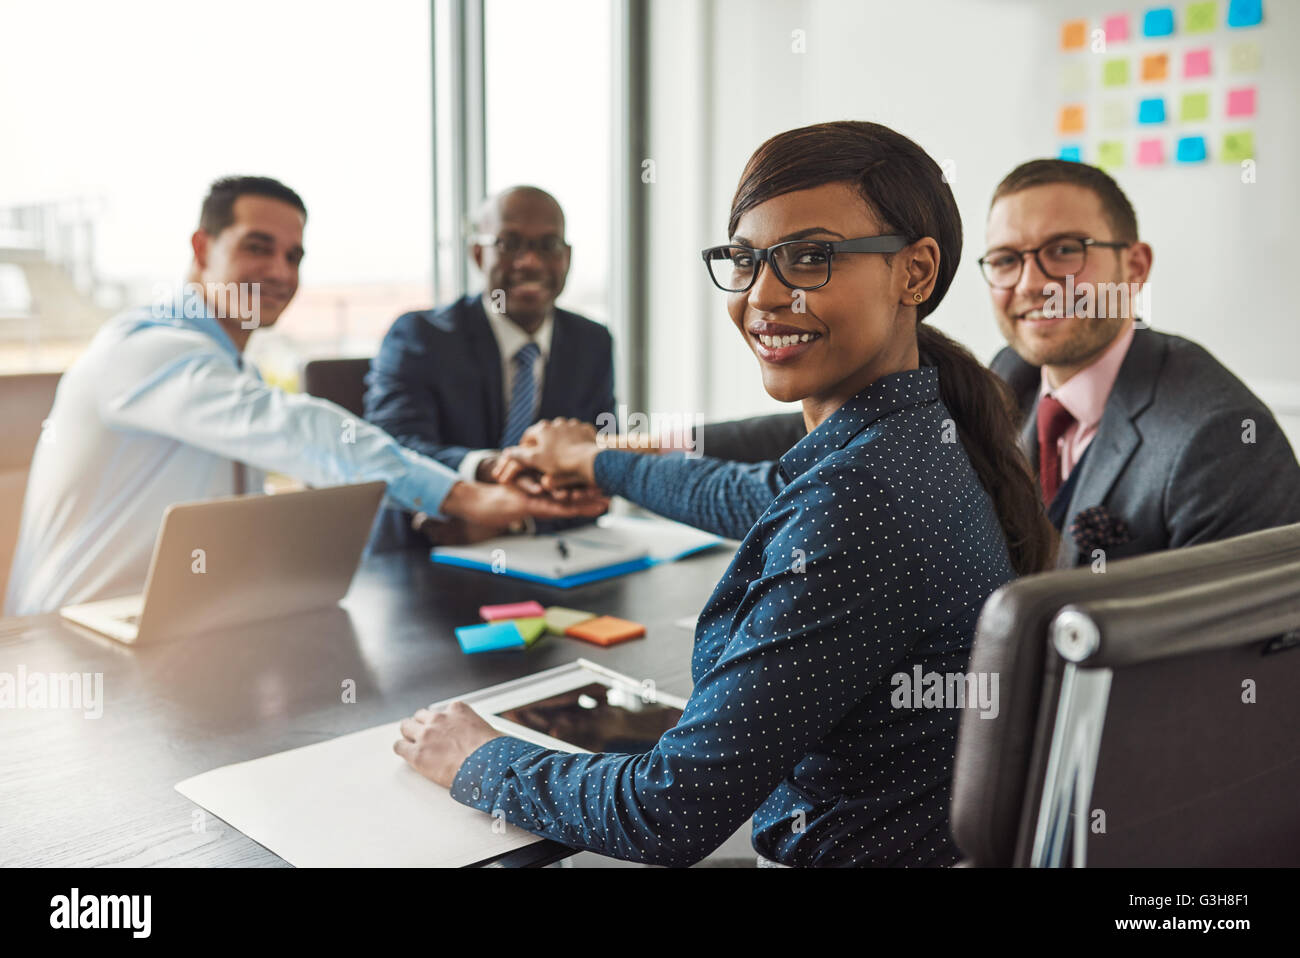 Successful African American team leader turning to smile at the camera as her multiracial team of executives links - Stock Image